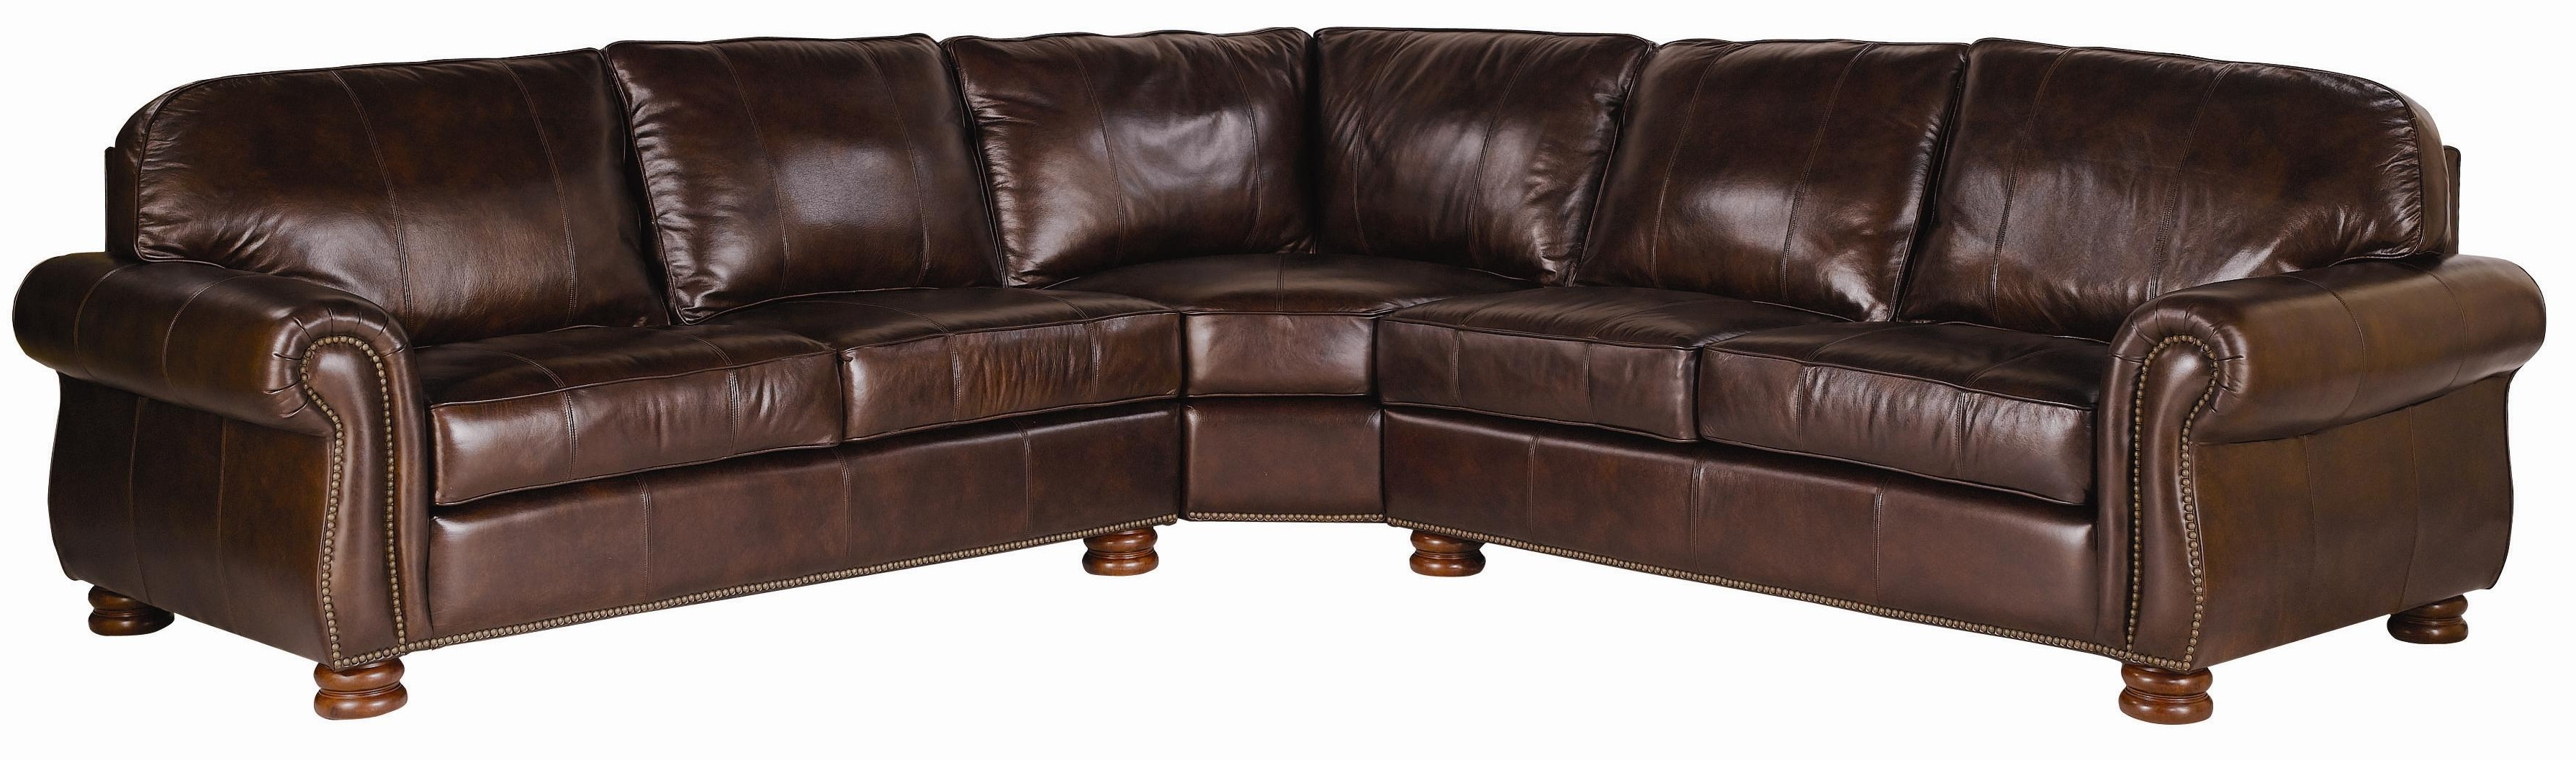 Thomasville Sectional Sofas Pertaining To Most Up To Date Thomasville® Leather Choices – Benjamin Leather Select 3 Piece (View 16 of 20)